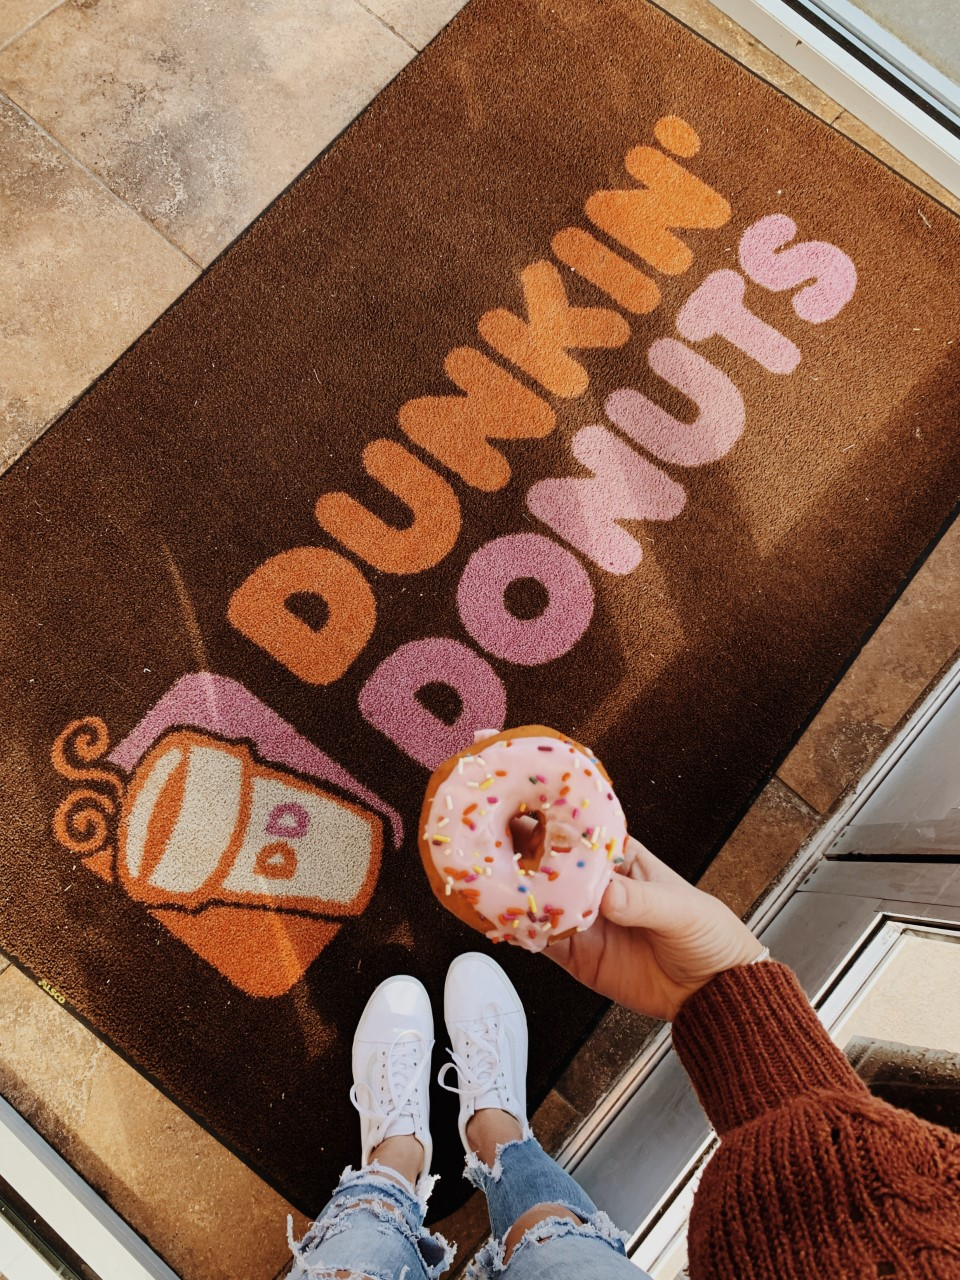 Pictured here is the Dunkin' Donuts entry way mat and a strawberry iced donut.